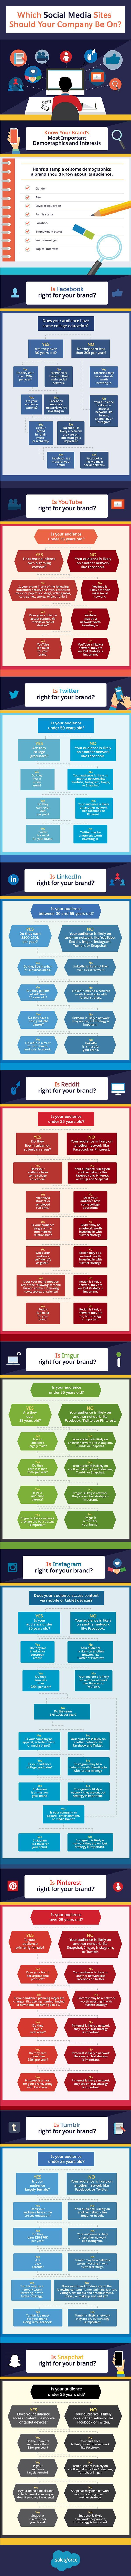 Facebook, YouTube, Twitter, LinkedIn, Reddit, Imgur, Instagram, Pinterest, Tumblr or Snapchat? Which Social Media Sites Should Your Company Be On - #infographic